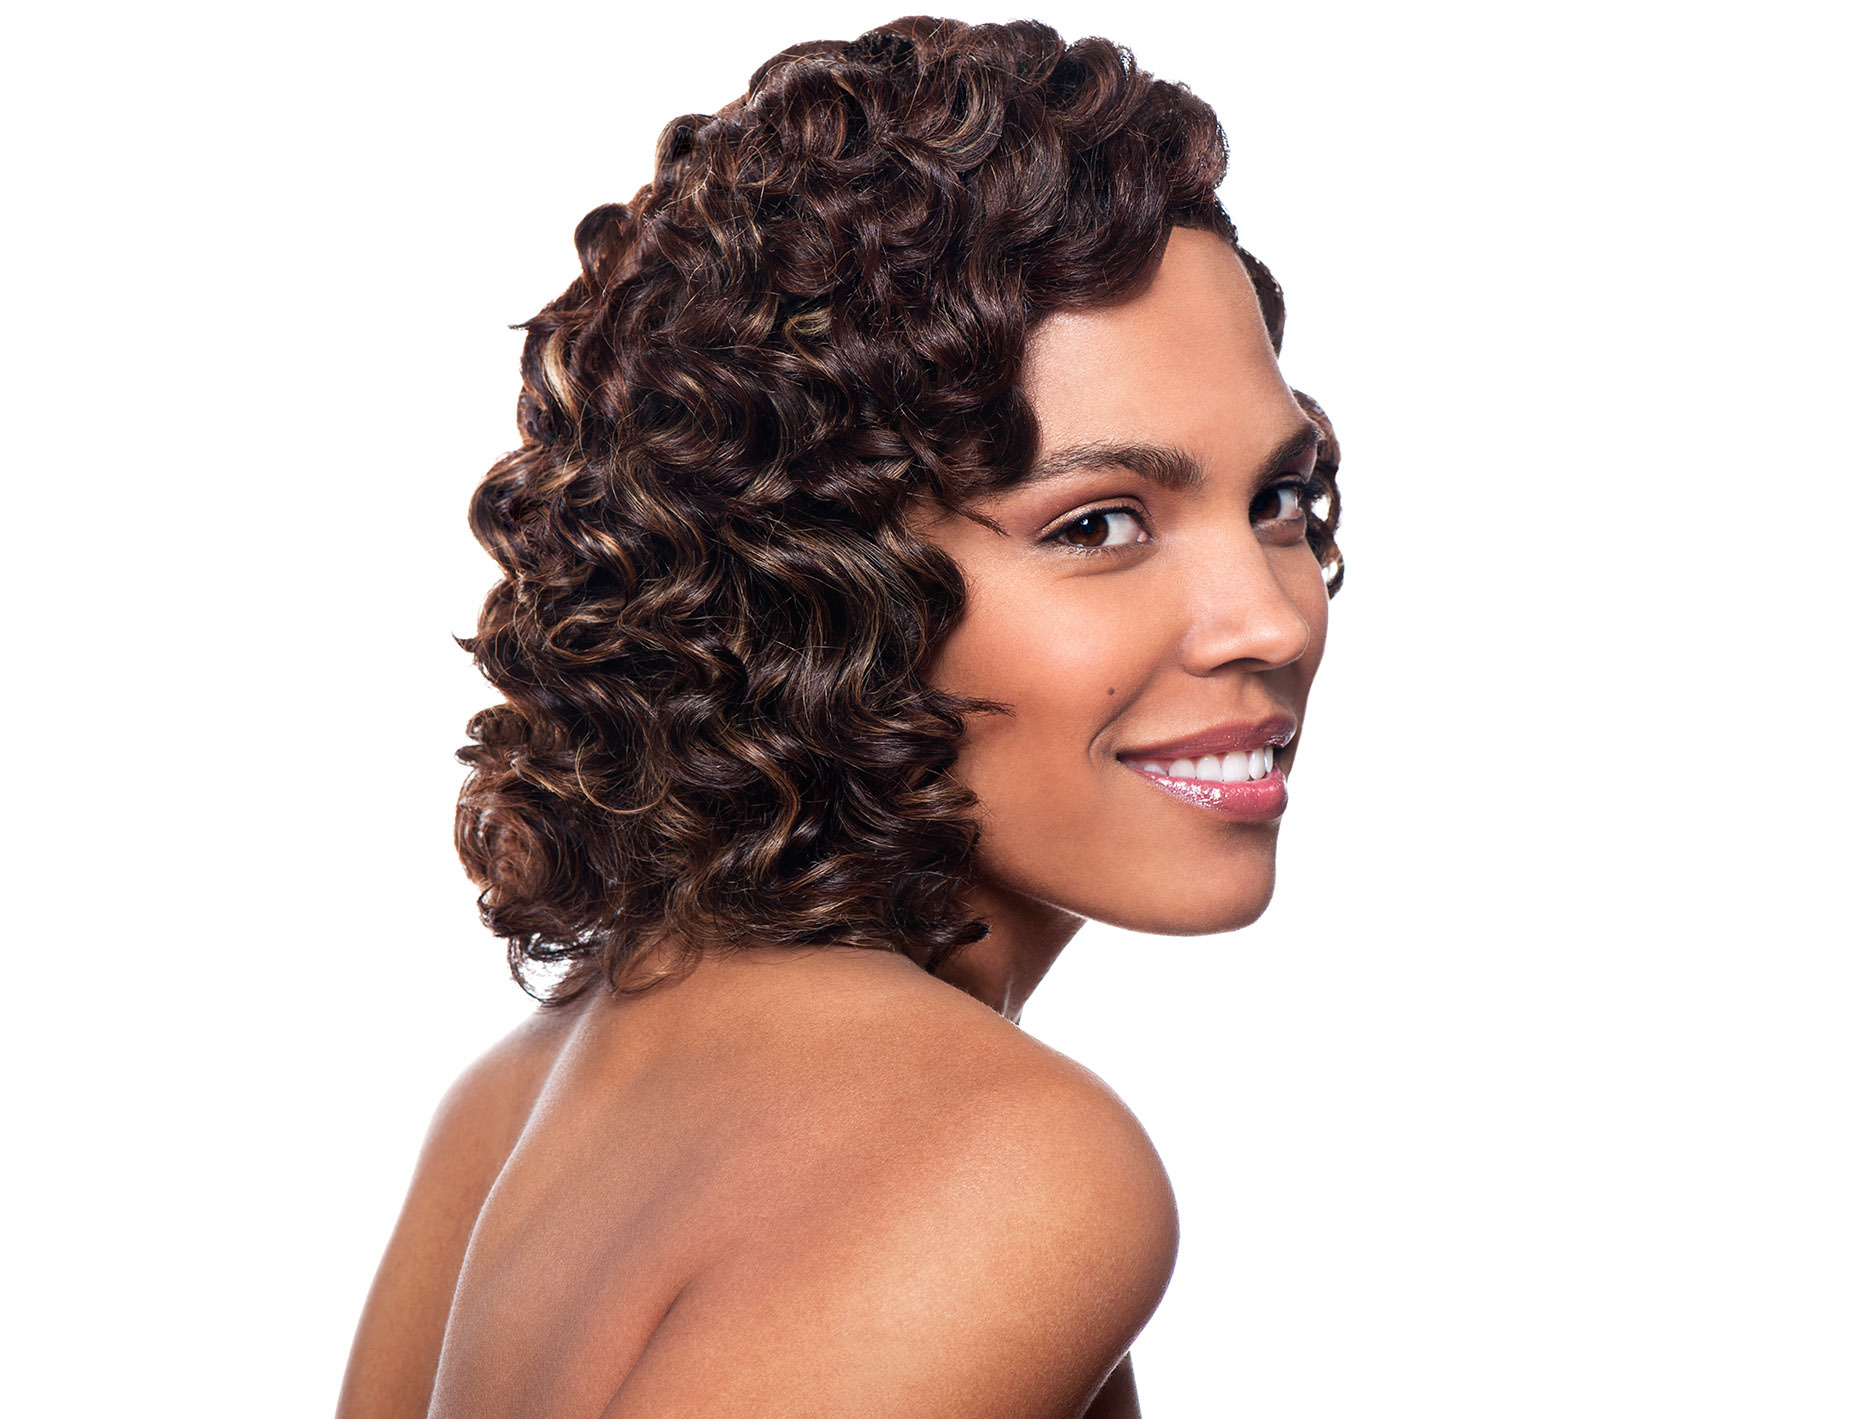 African-American-Black-Haircare-Products_Hairstyling-tools_Perfect-Curls_RHanelPhotography_02